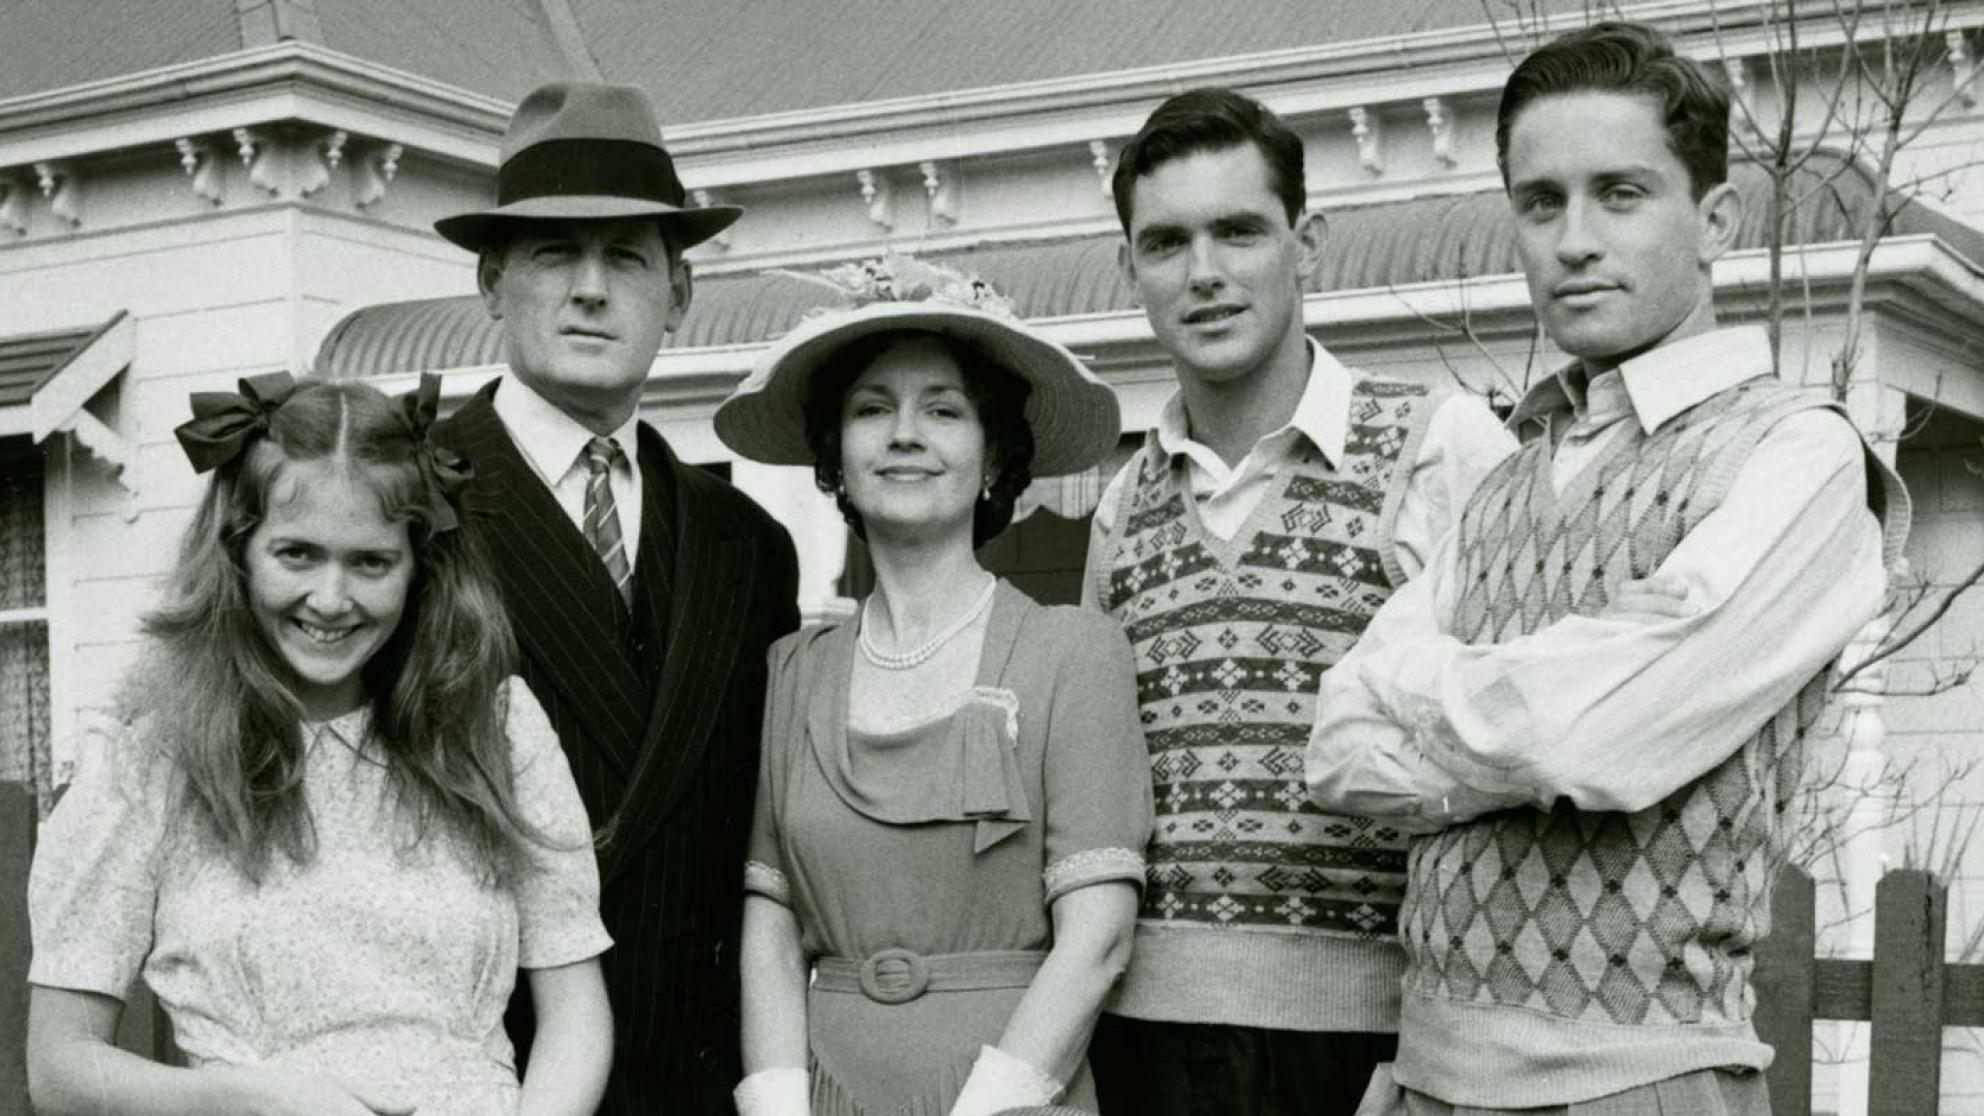 Main cast of television show The Sullivans. Susan Hannaford (Kitty), Paul Cronin (Dave), Lorraine Bayly (Grace), Andrew McFarlane (John), Steven Tandy (Tom) and Richard Morgan (Terry).